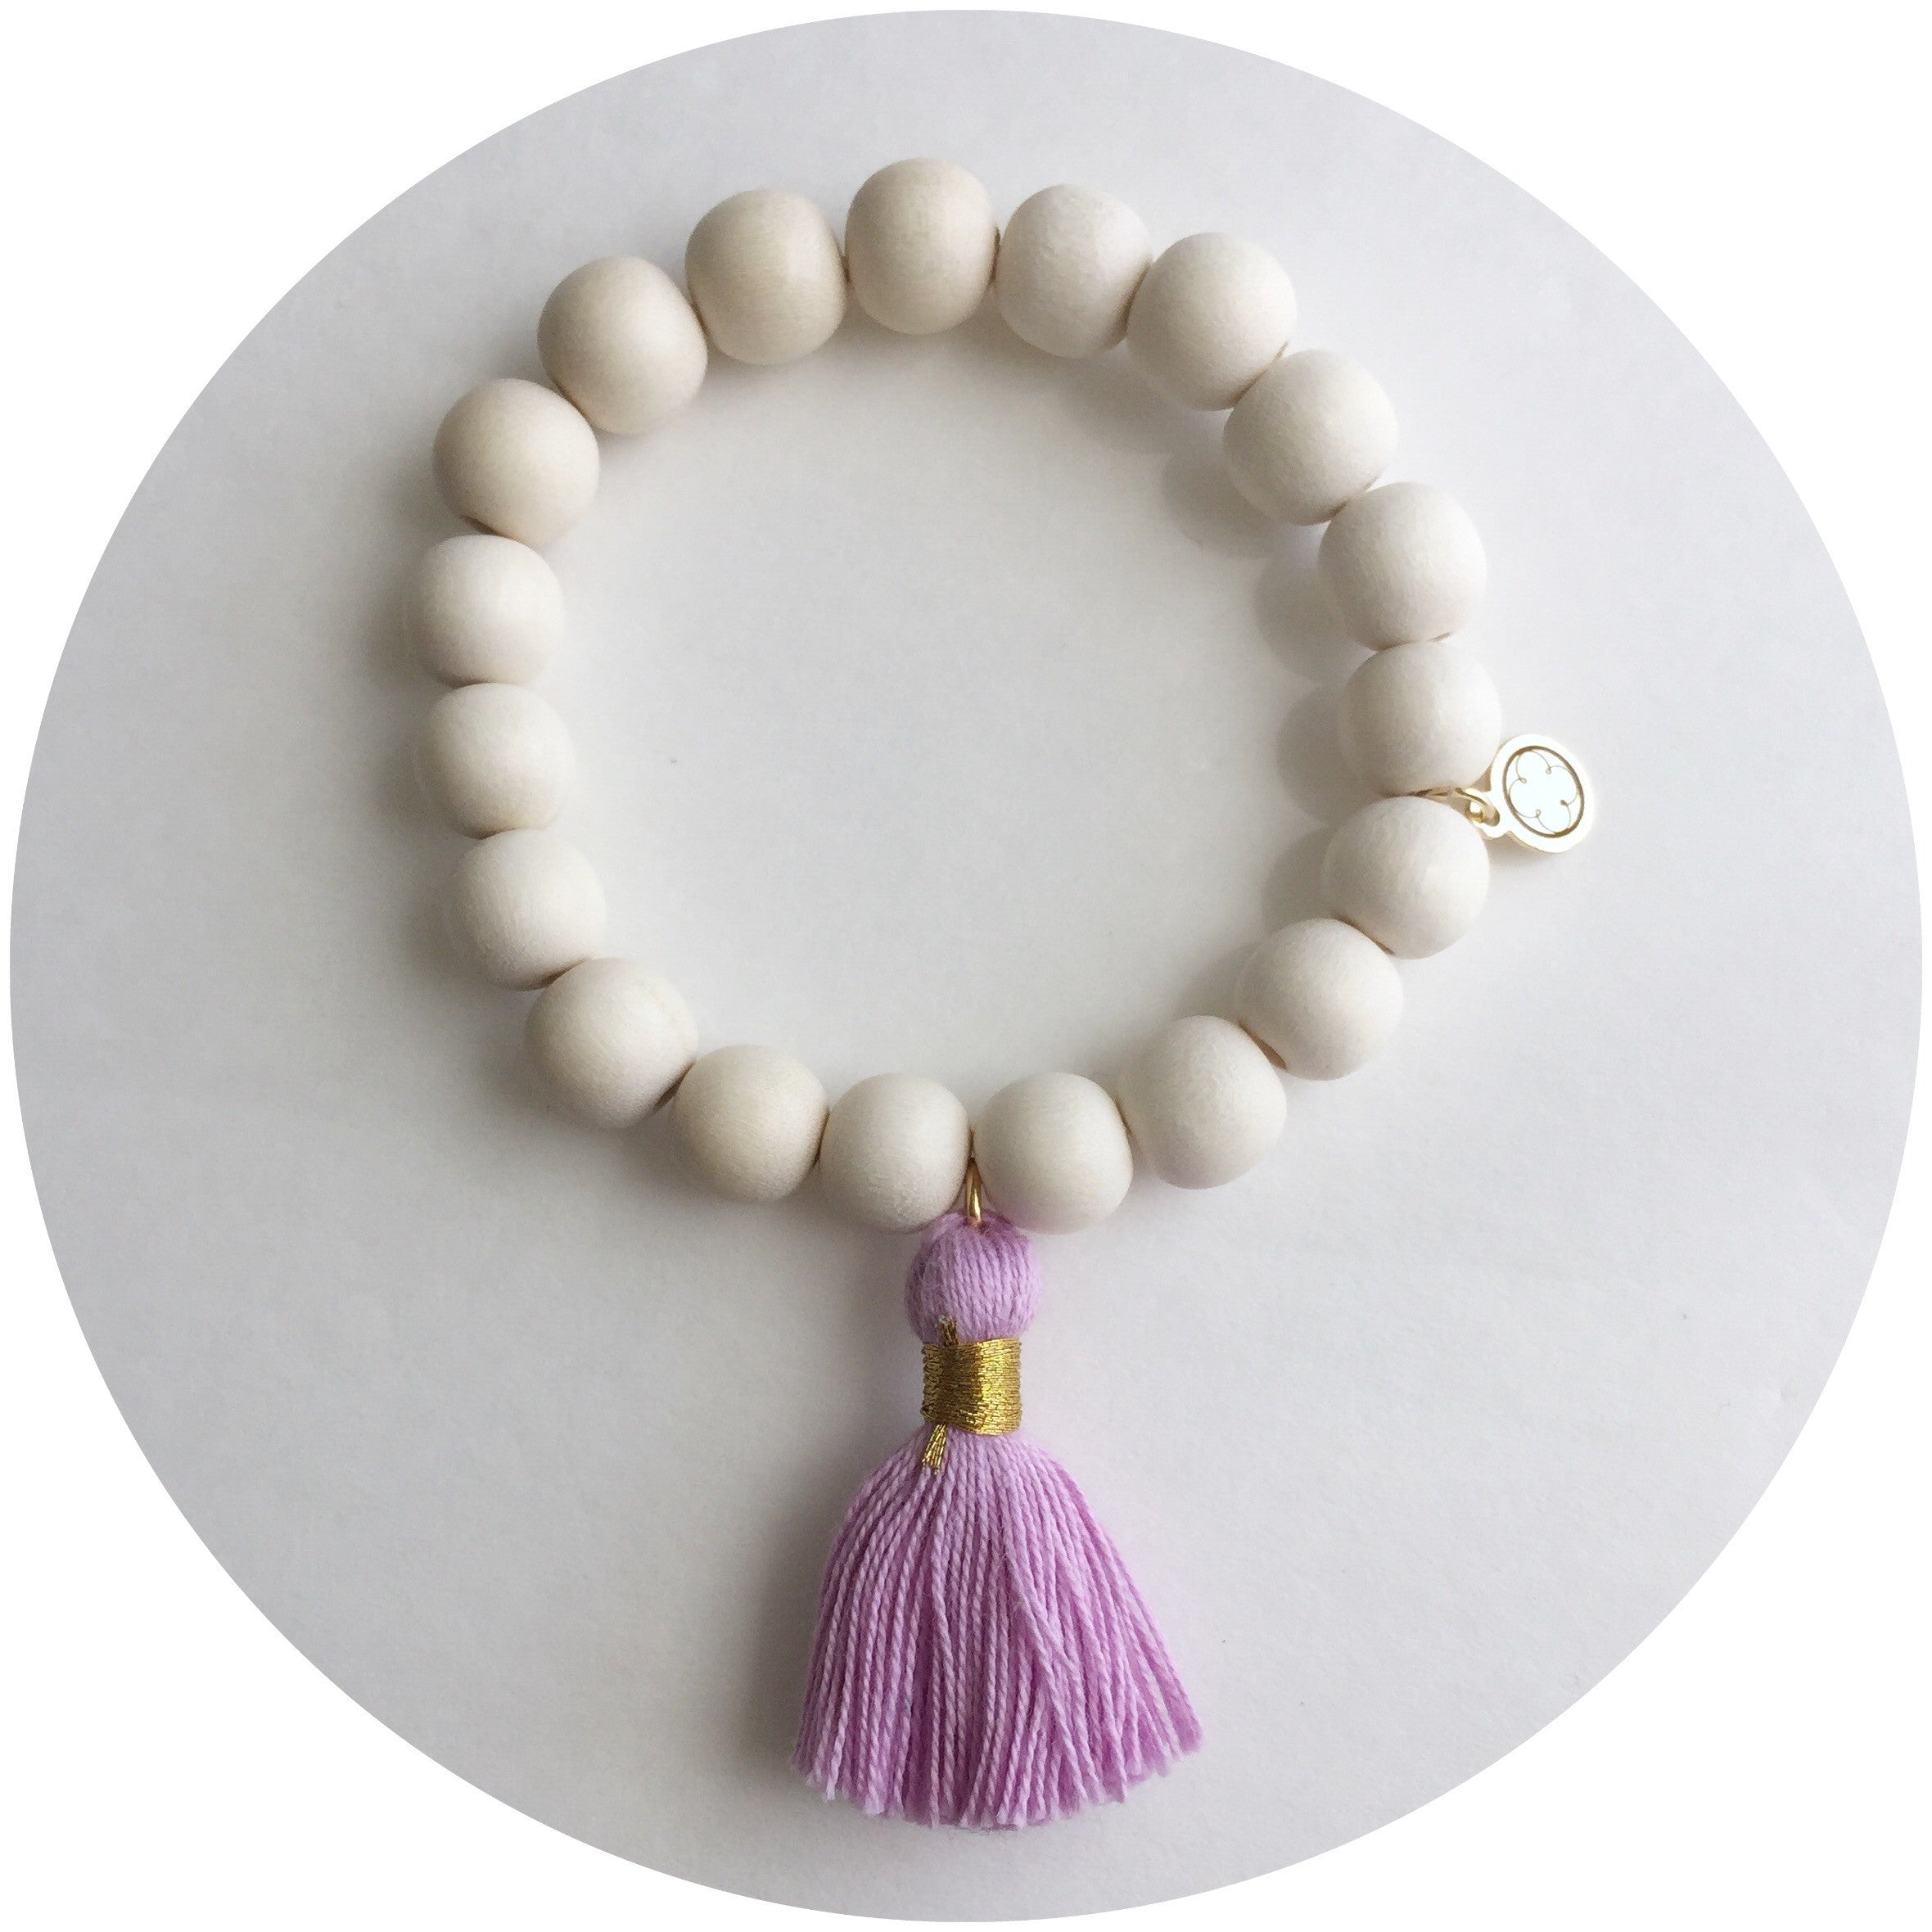 Blonde Wood with Lavender Tassel - Oriana Lamarca LLC